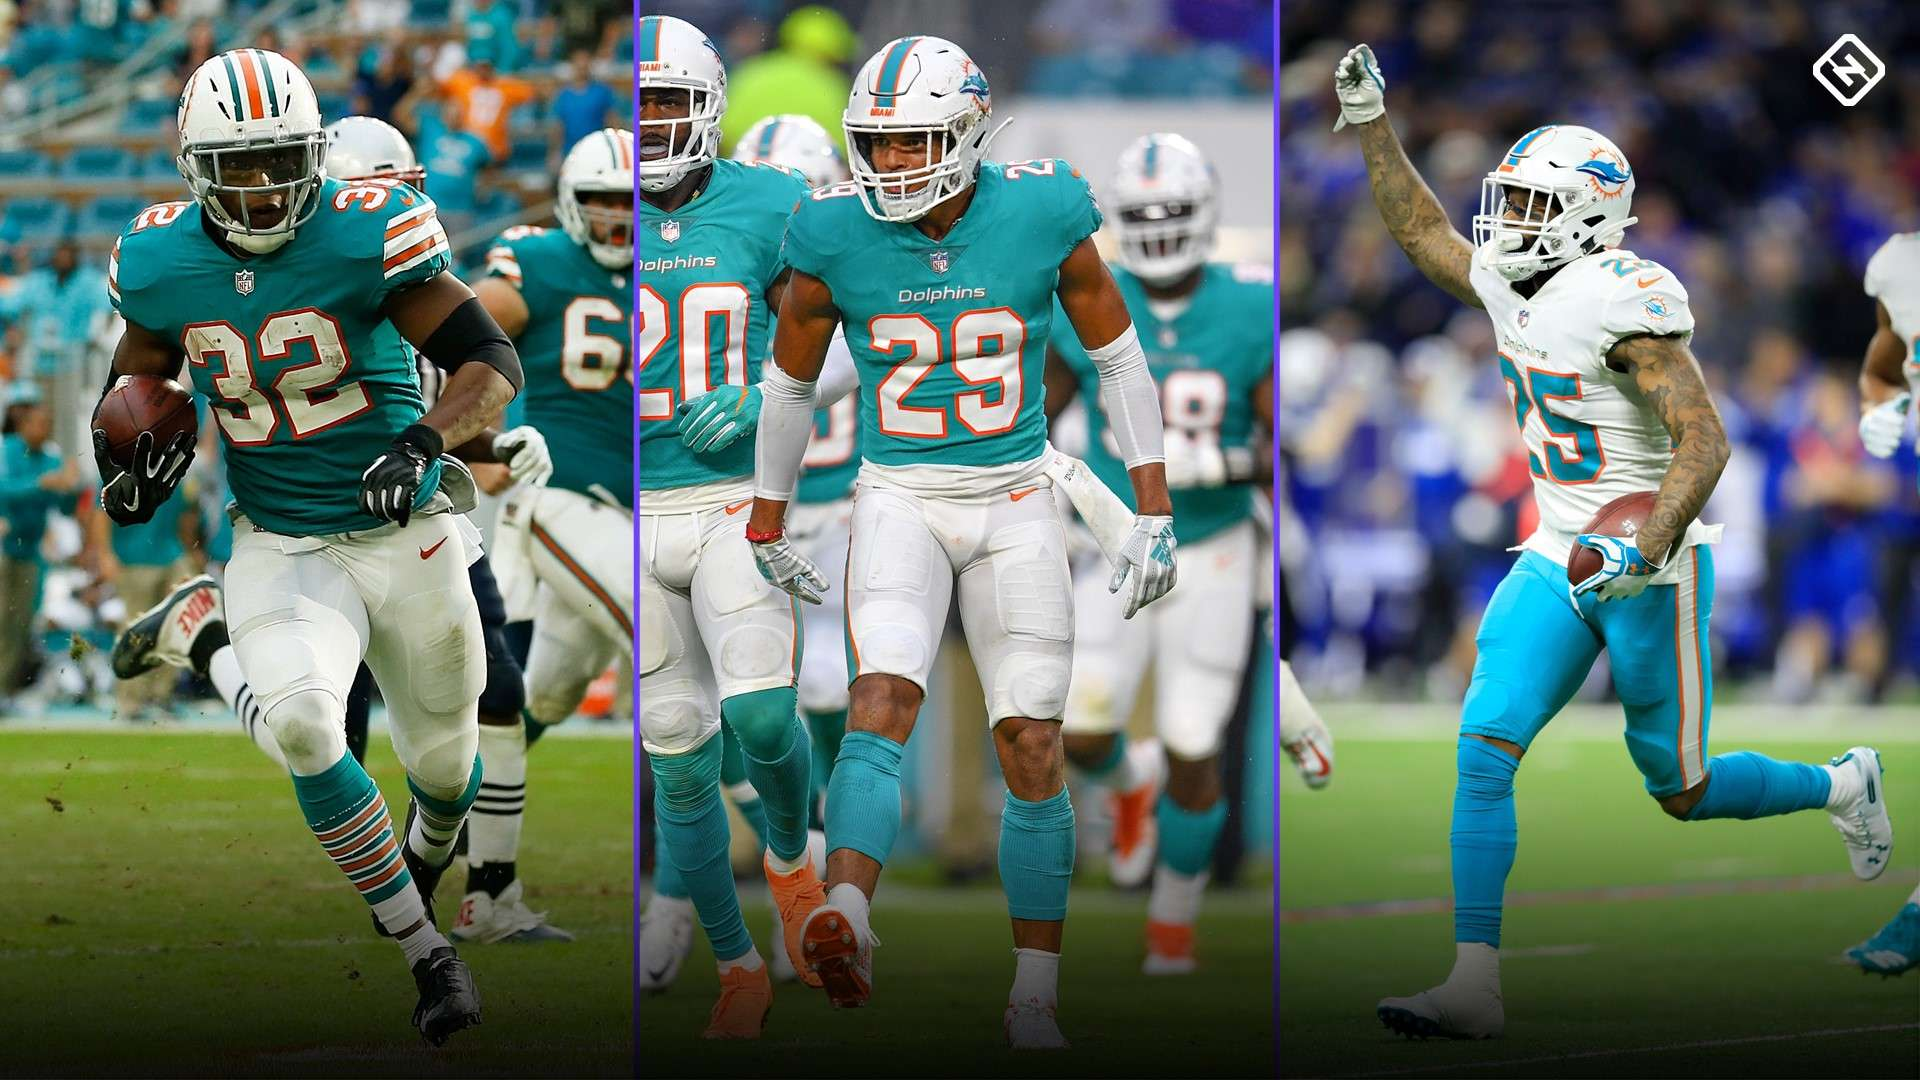 NFL uniform rankings: Patriots, Chargers rise with new looks for ...